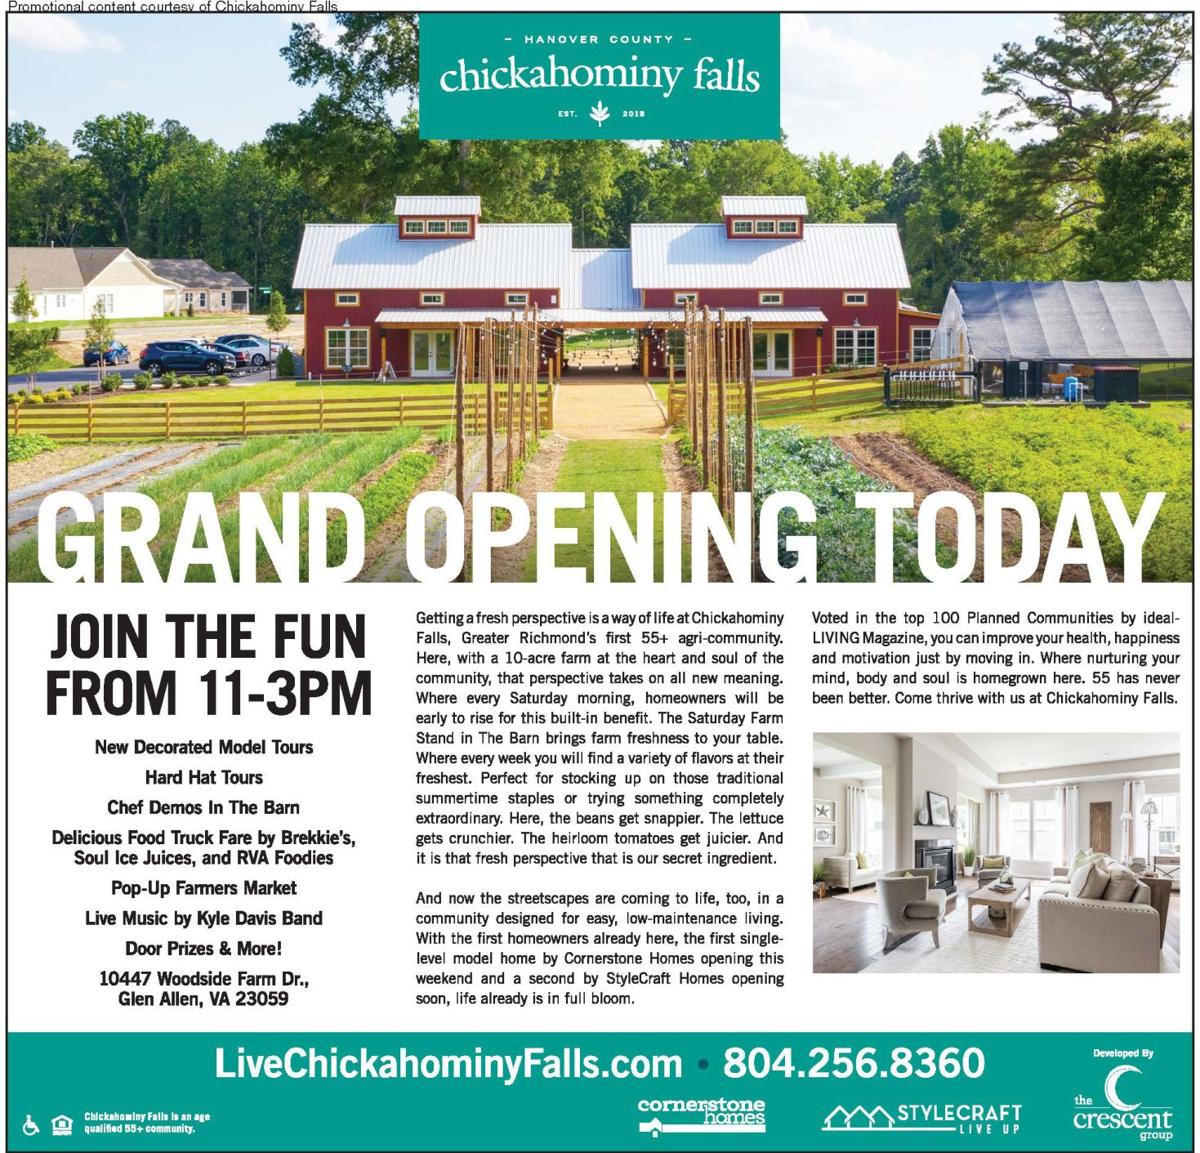 Chickahominy Falls: Grand Opening Today 02